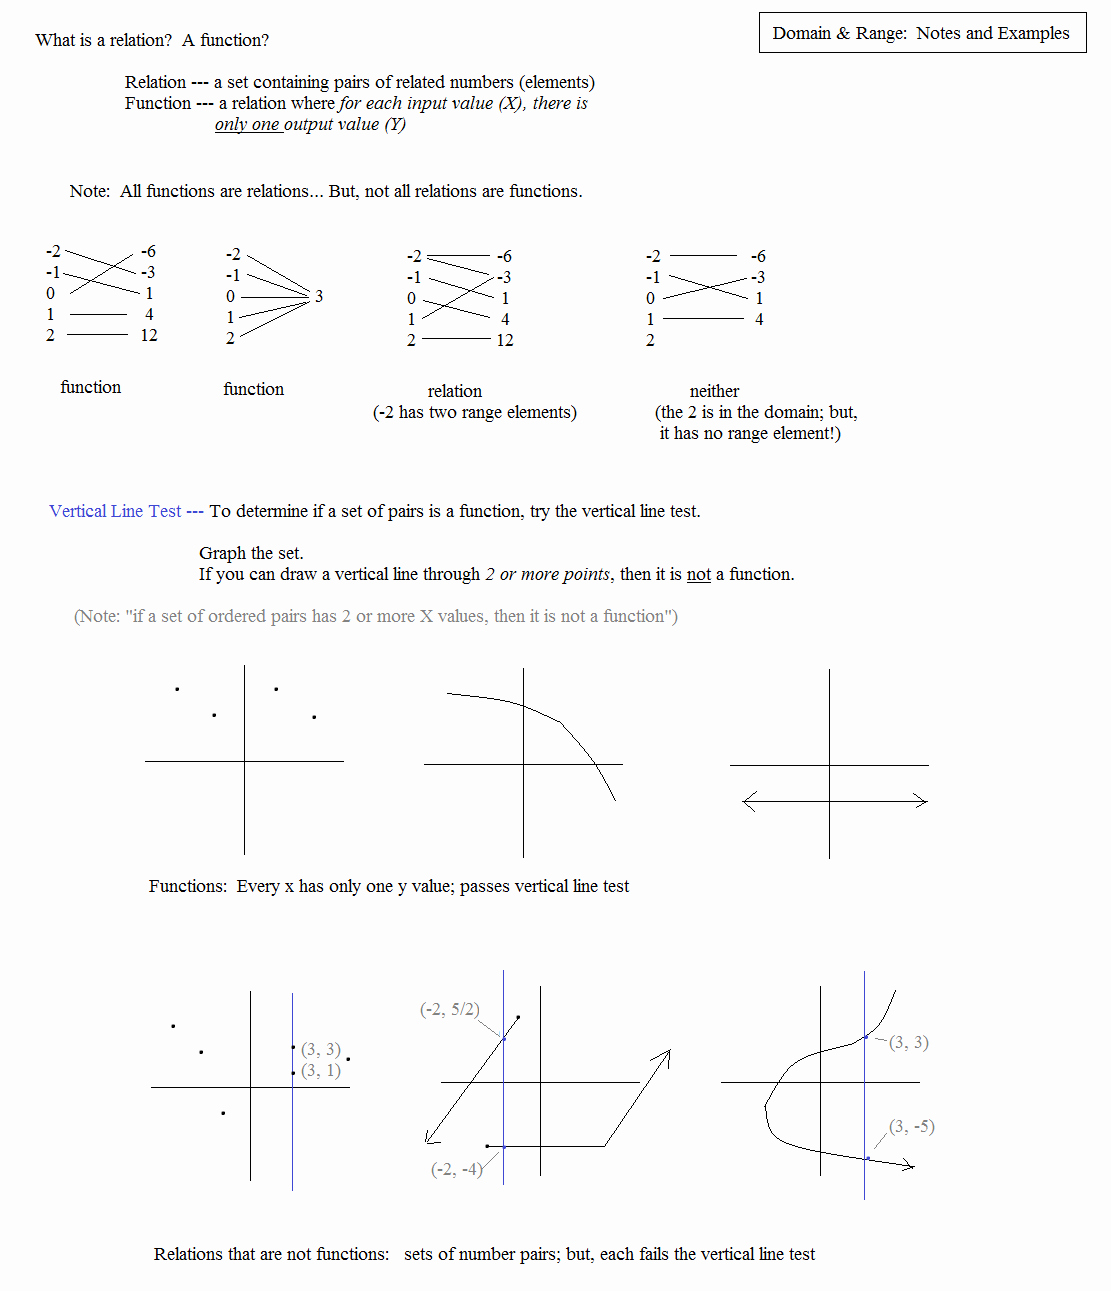 Function Notation Worksheet Answers Best Of Functions Worksheet Domain Range and Function Notation